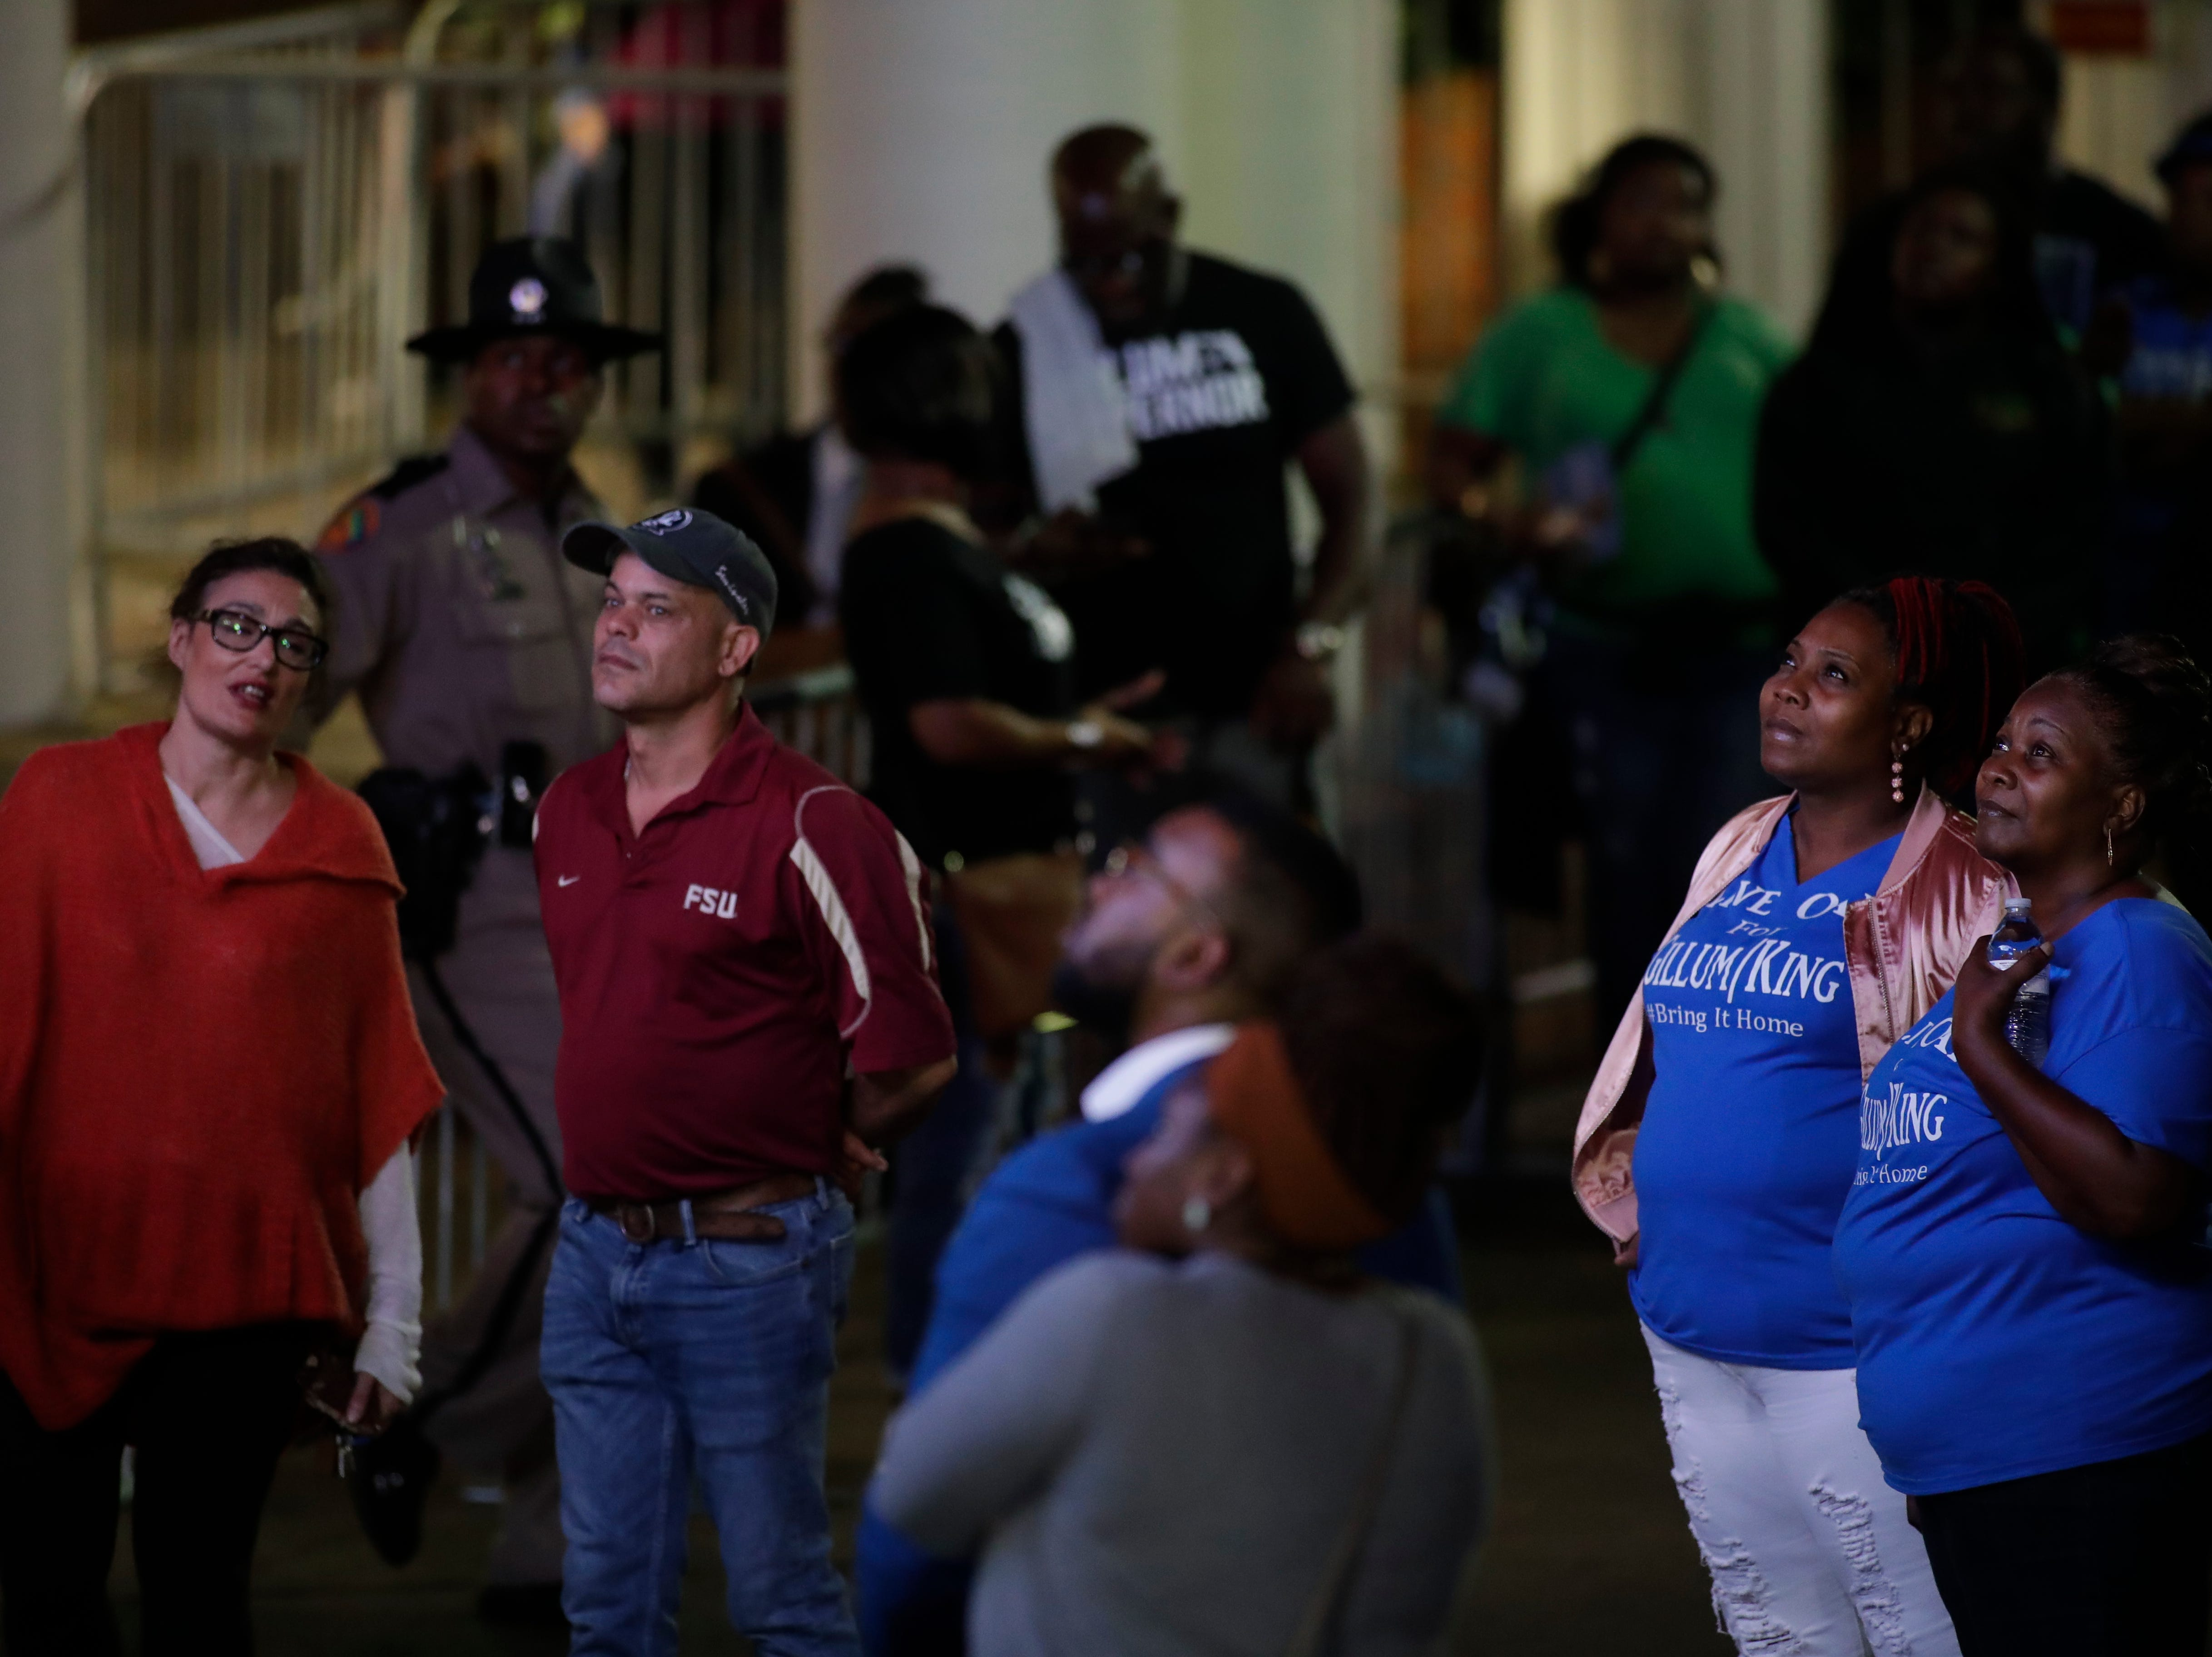 Supporters await the appearance of Andrew Gillum and the results of the midterm elections in front of Lee Hall on the Florida A&M campus in Tallahassee, Fla. Tuesday, Nov. 6, 2018.